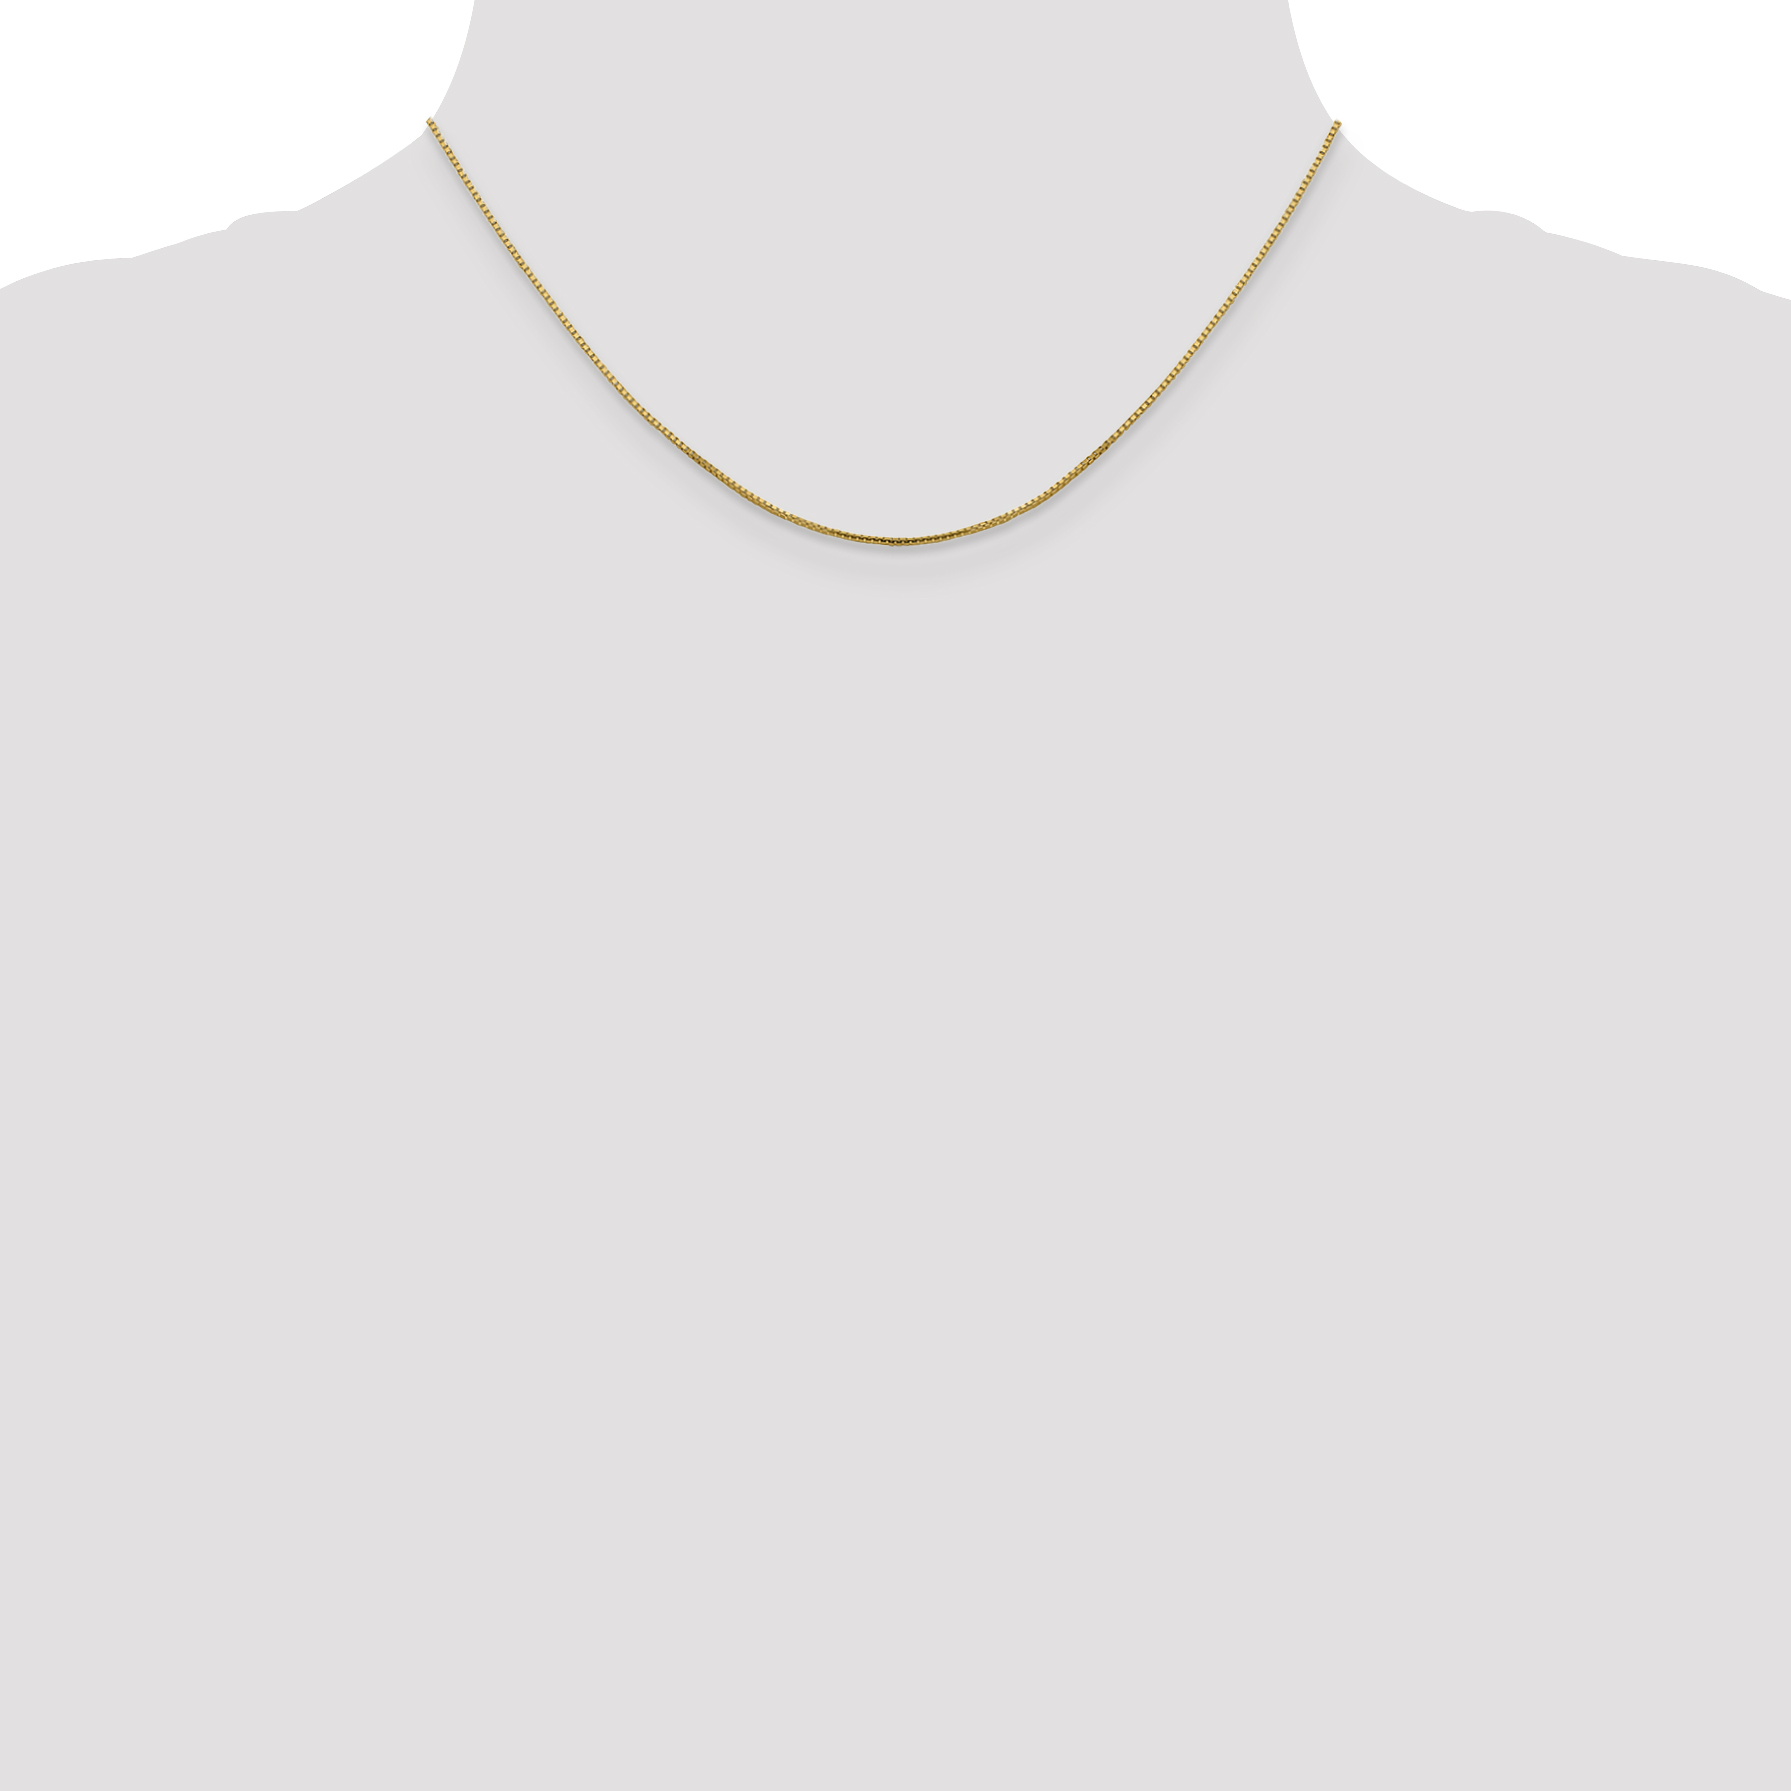 14k Yellow Gold 1 Mm Octagonal Sparkle Link Box Chain Necklace 16 Inch Pendant Charm Fine Jewelry Gifts For Women For Her - image 2 of 5